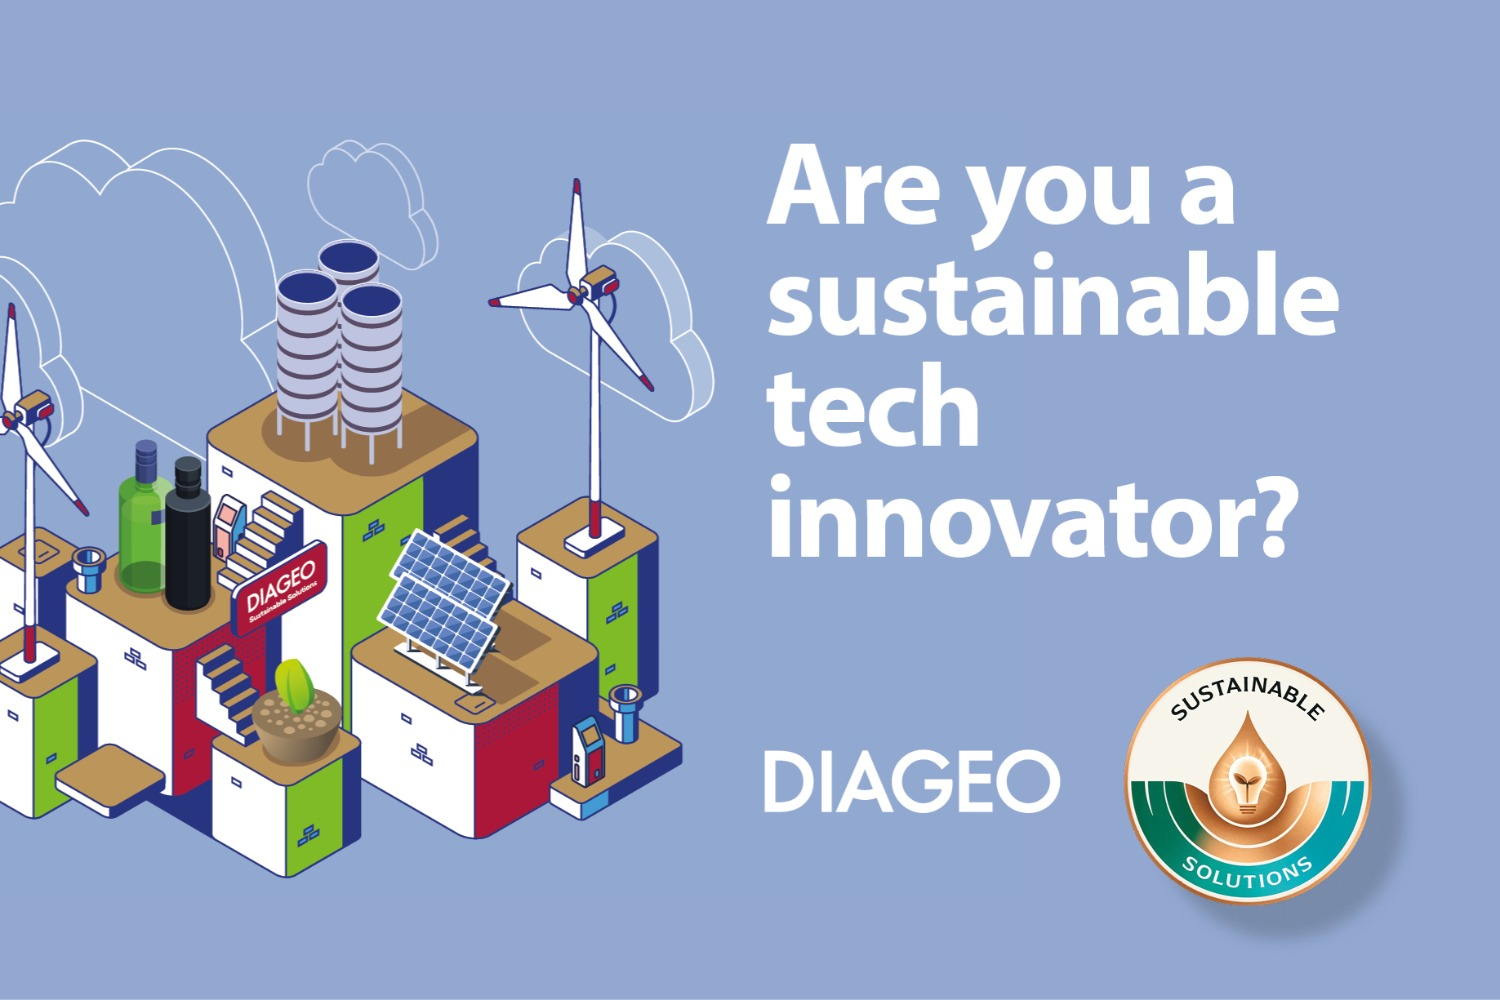 Diageo collaborates with innovators to create a more sustainable world